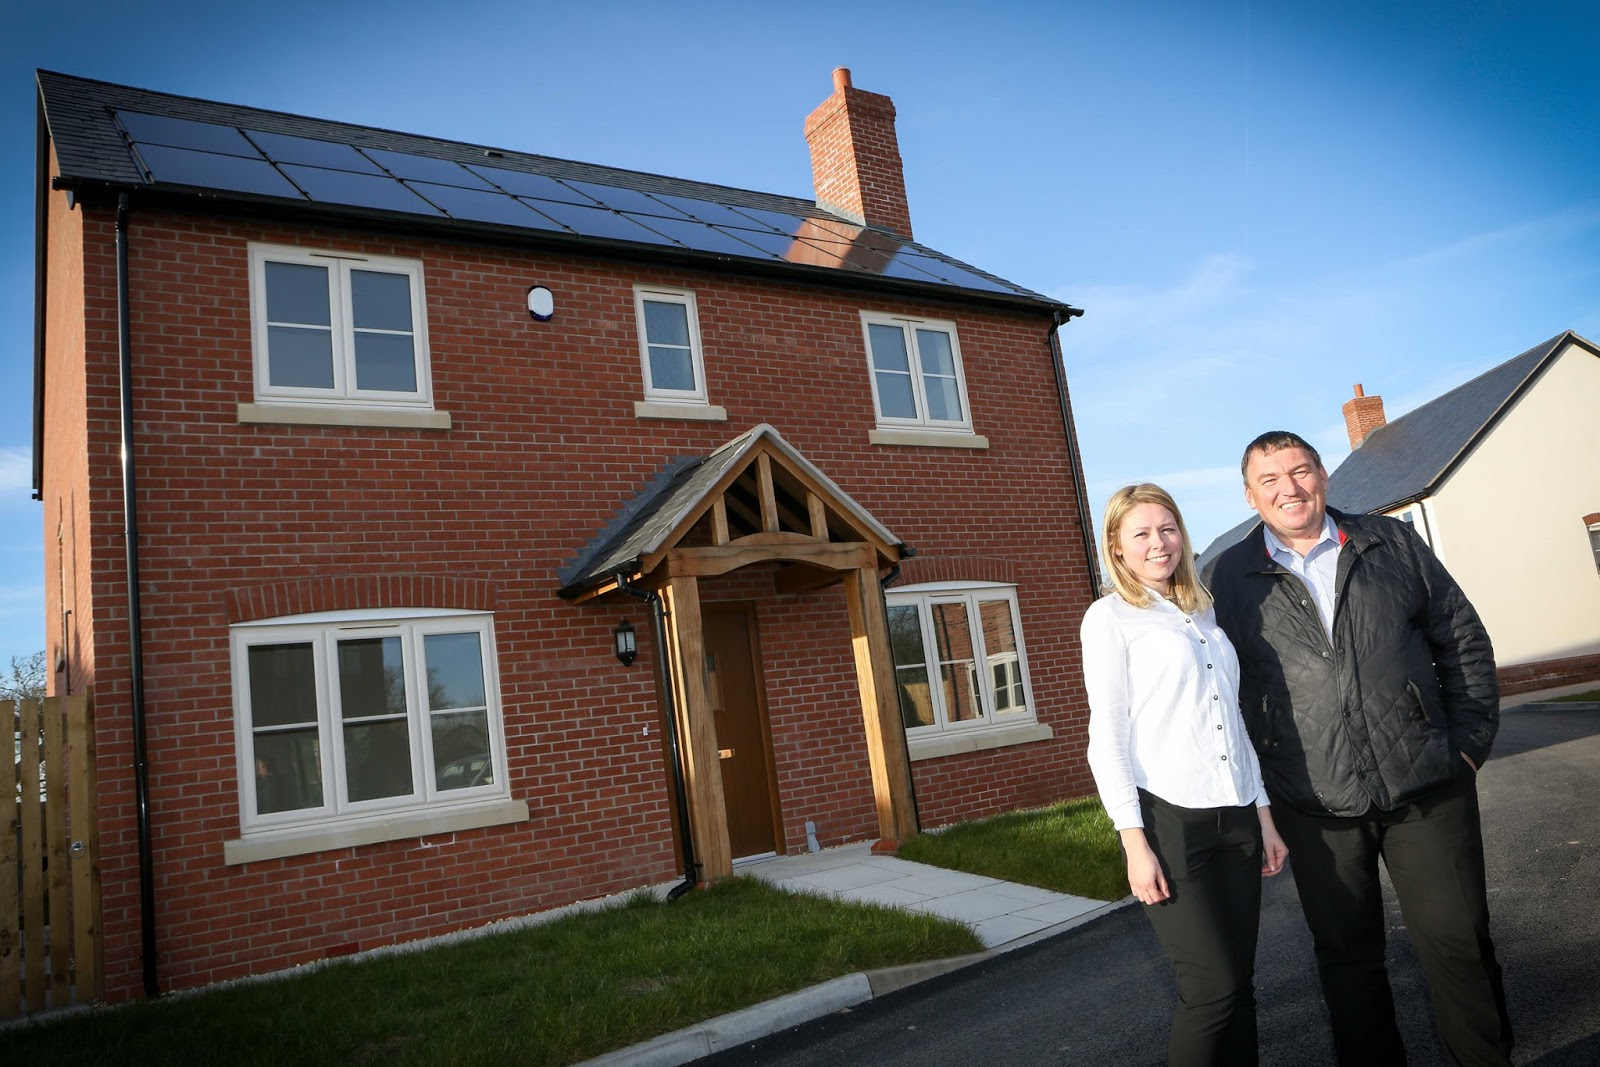 eco house highlights benefits of renewable energy systems in new